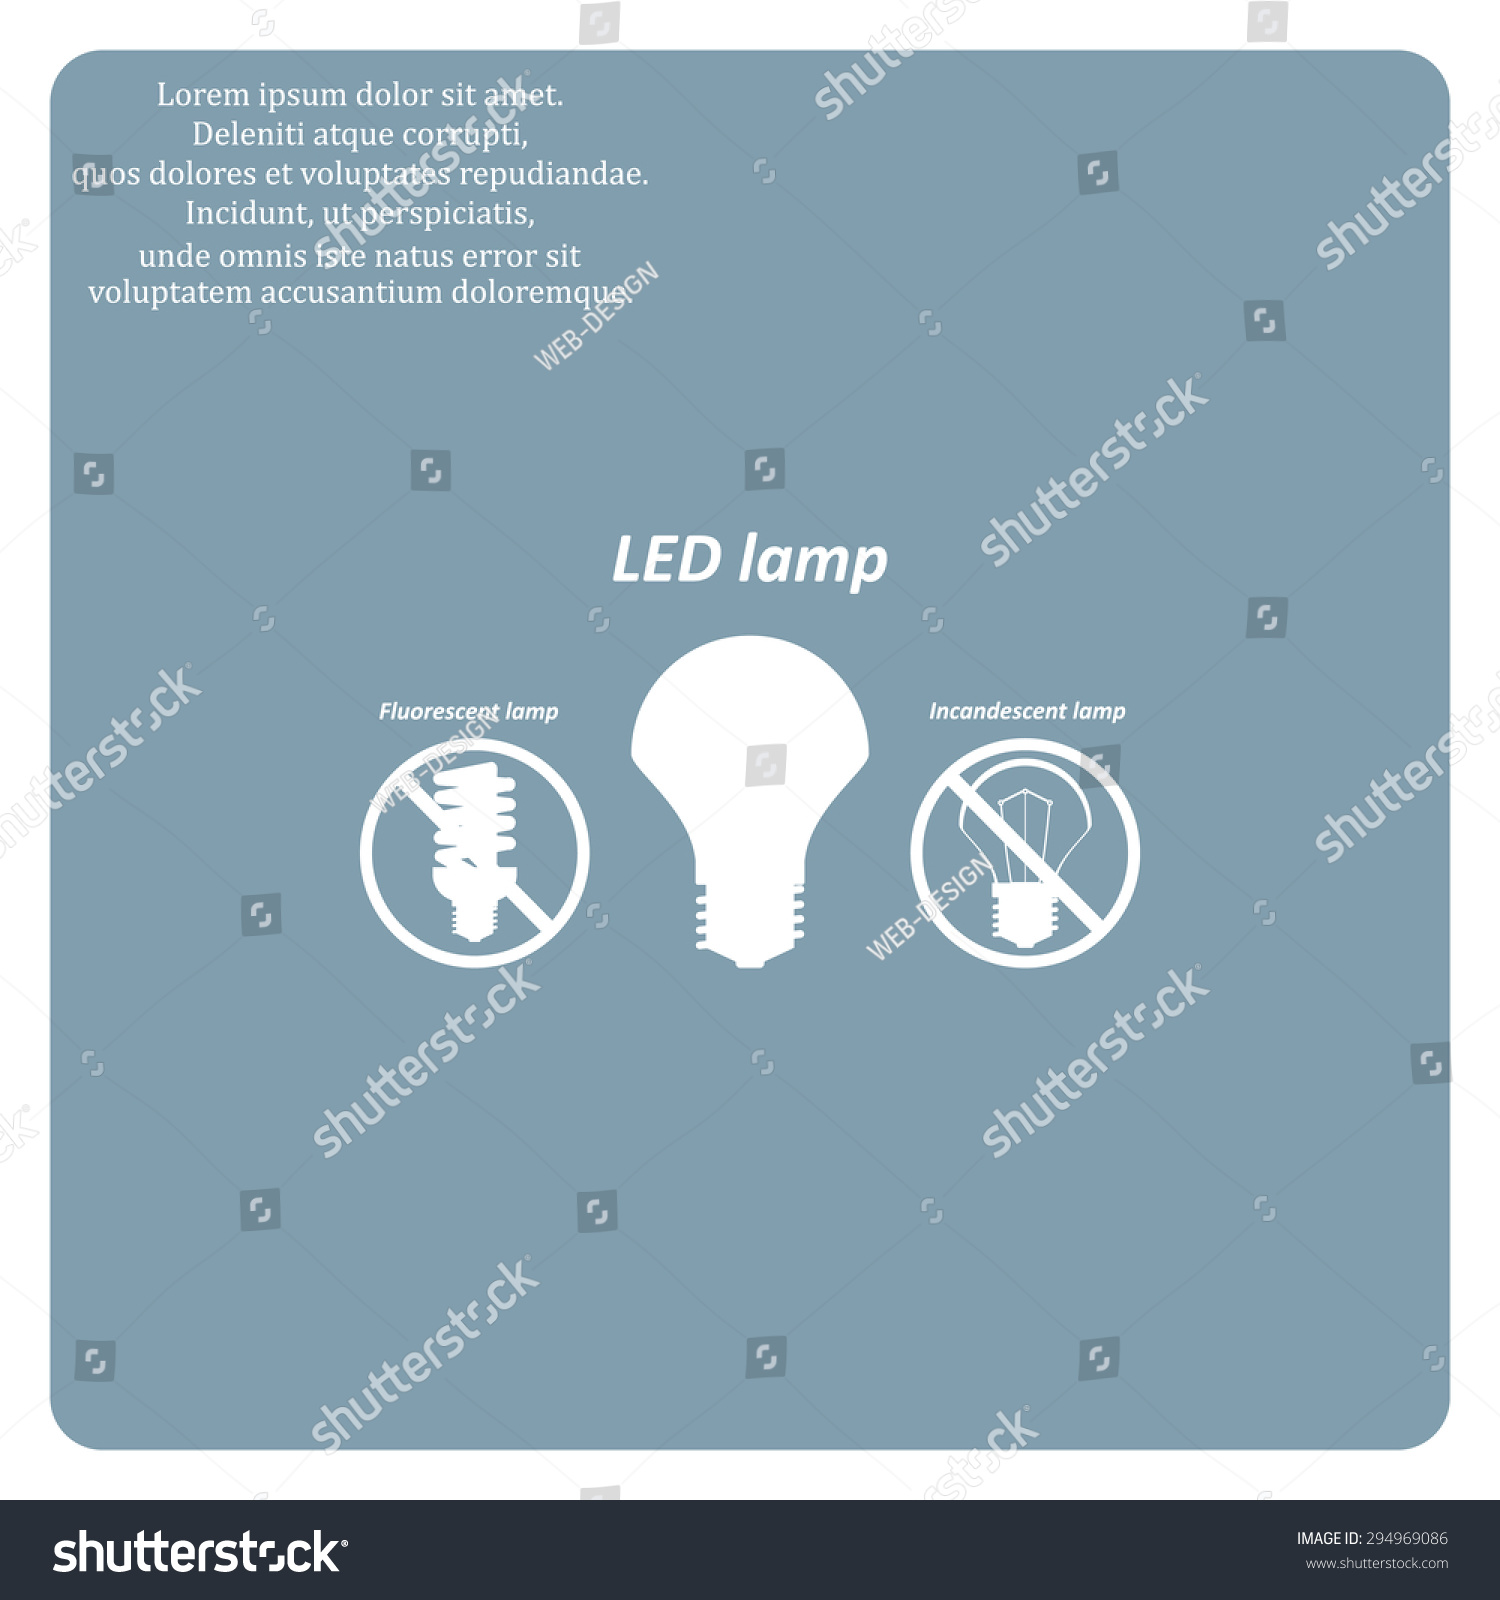 Fluorescent Lamp Led Incandescent Bulb Stock Vector Royalty Diagram Of The Light How Flourescent Icon Design